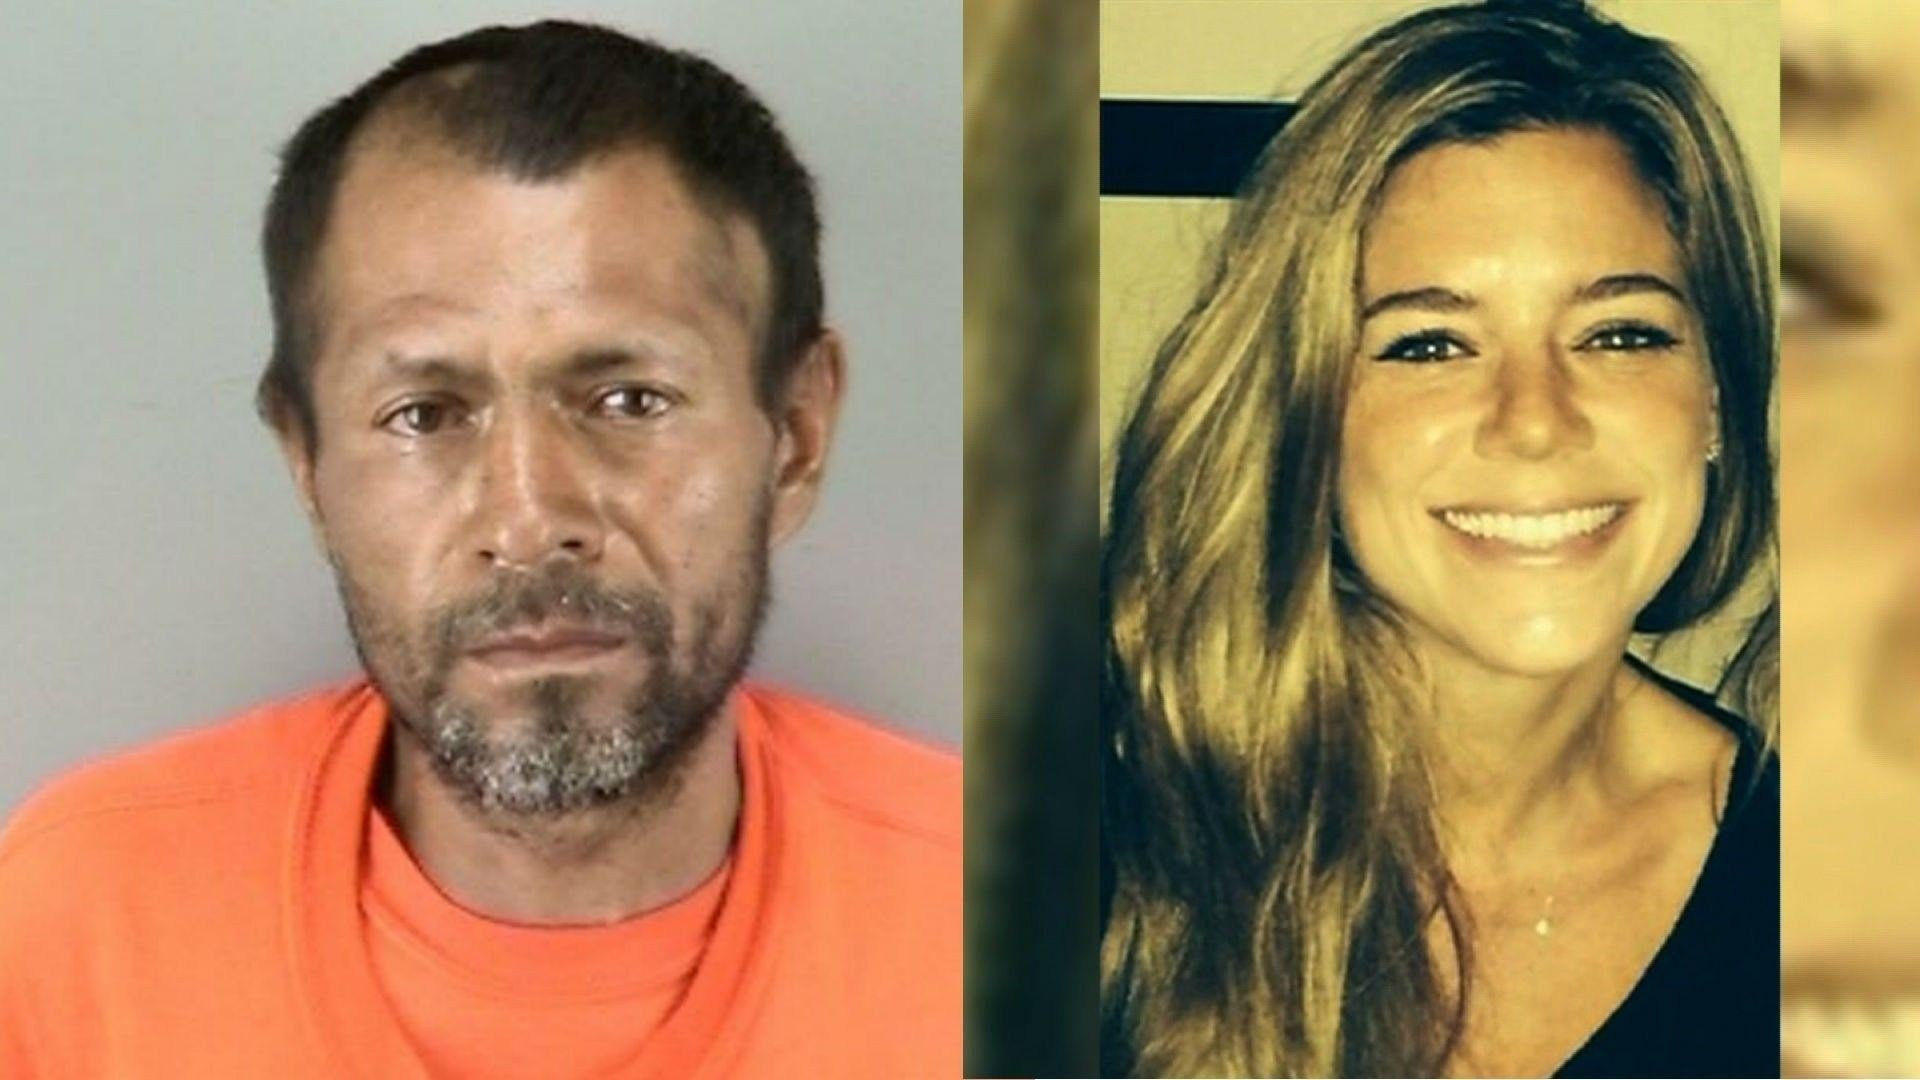 Kate Steinle (left), 32, was killed in July 2015. Jose Ines Garcia Zarate (right) was deported from the US fives times before the shooting, authorities say.